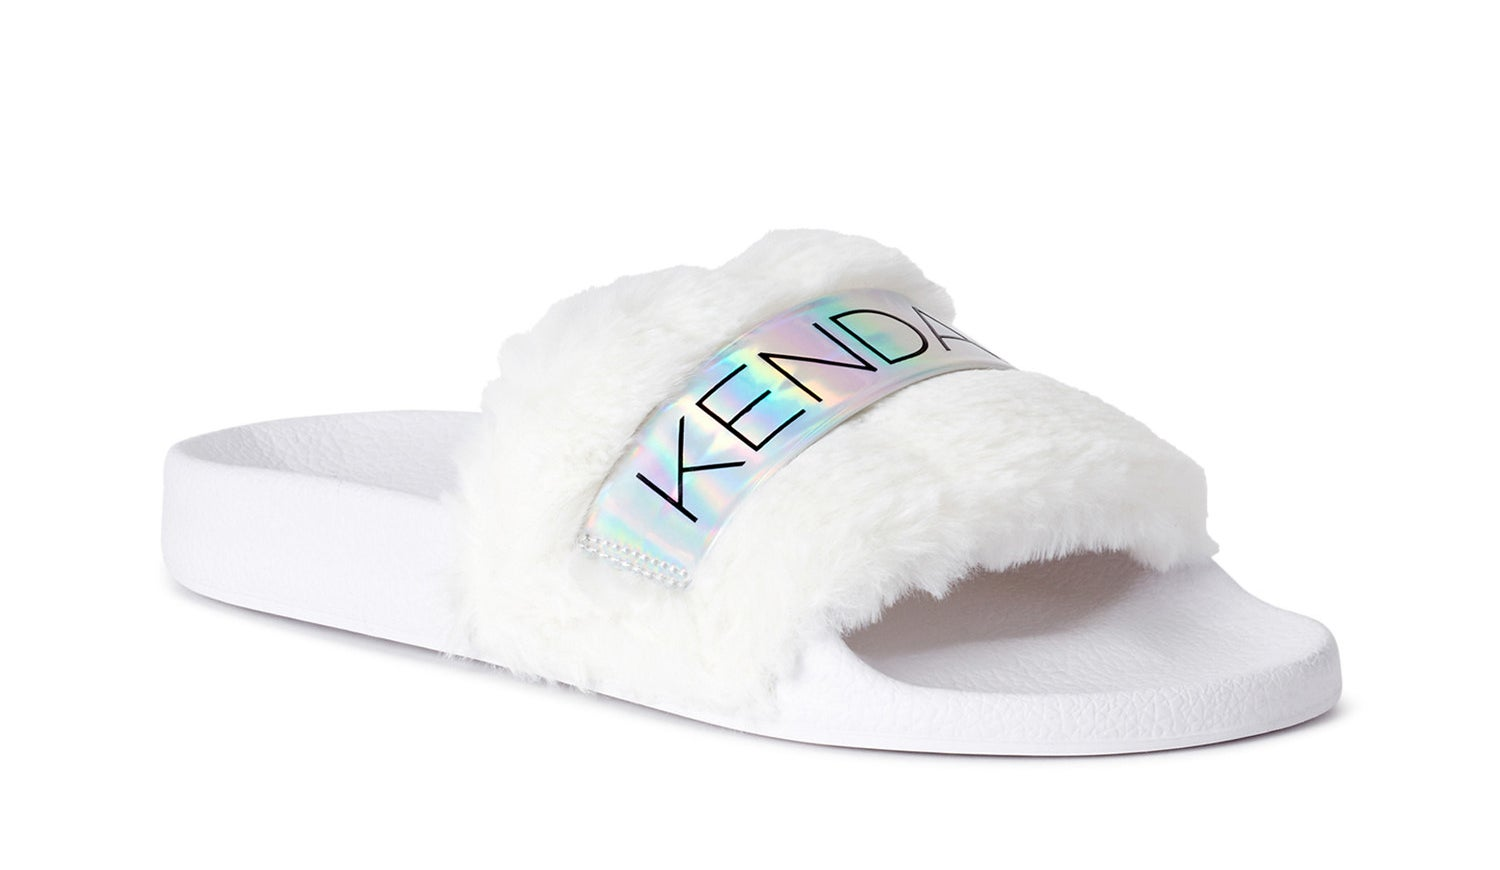 The white slides with faux fur and holographic text